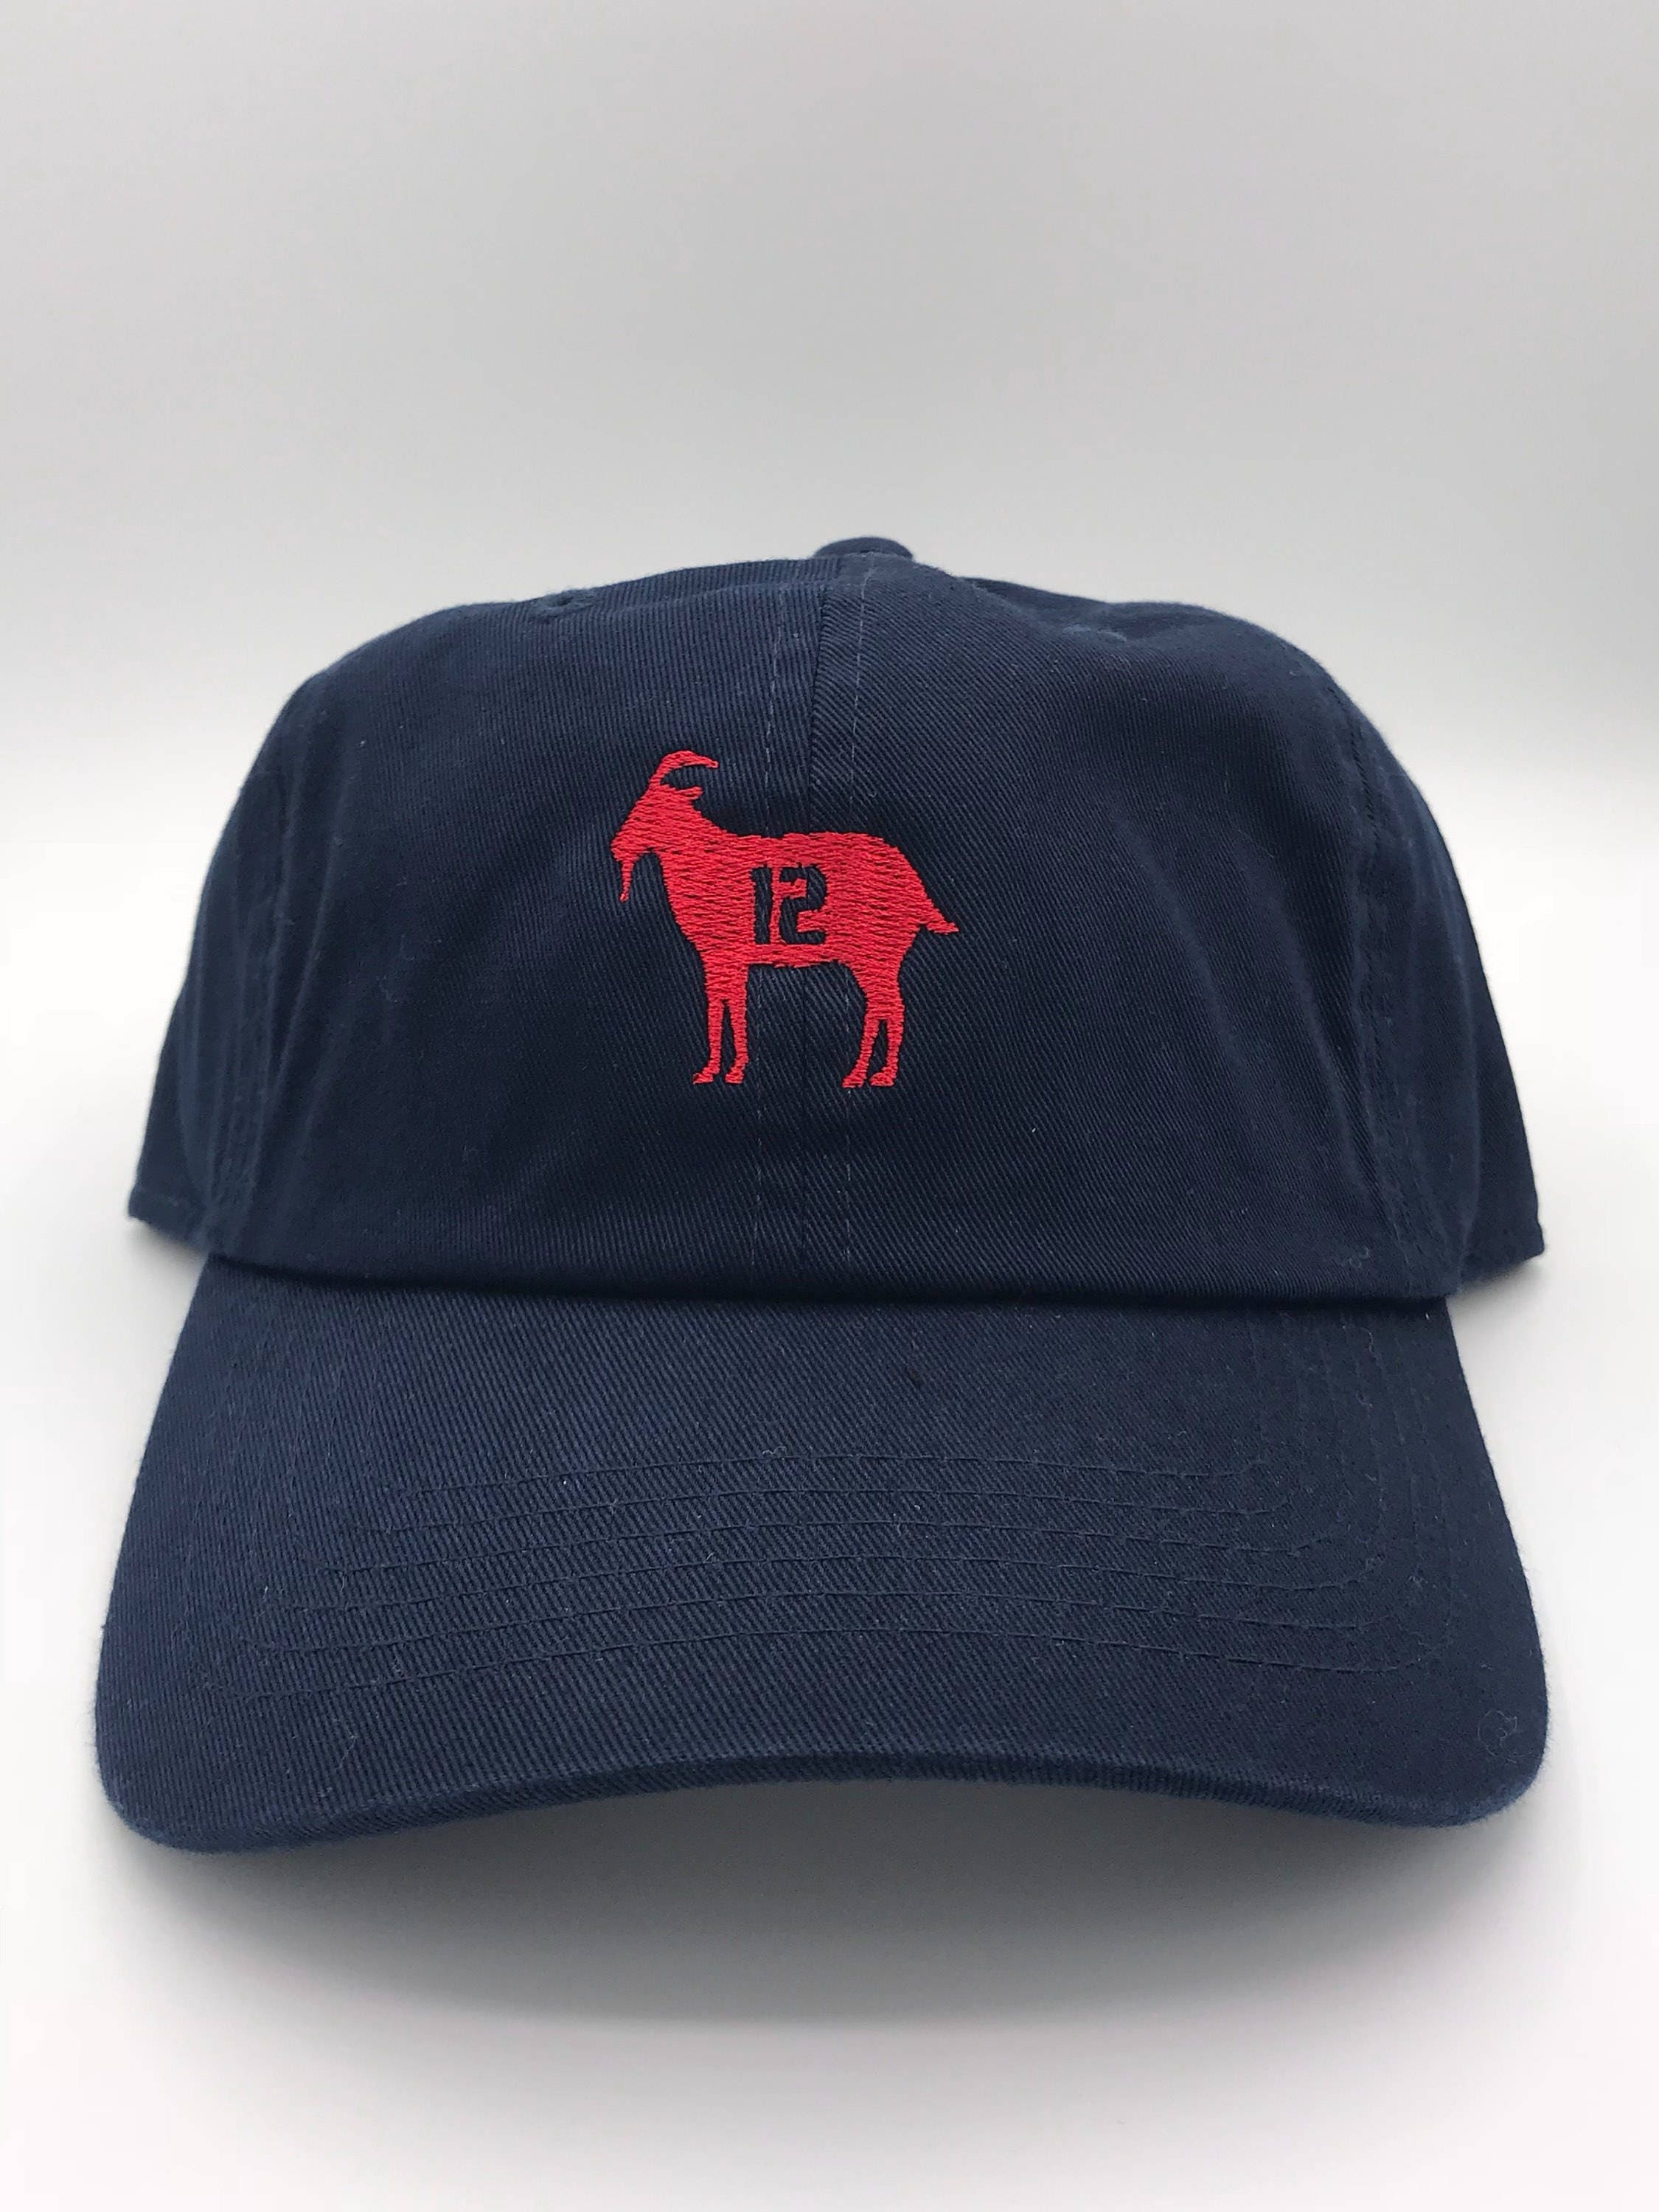 042eac82885 The Goat Football Dad Cap. gallery photo ...